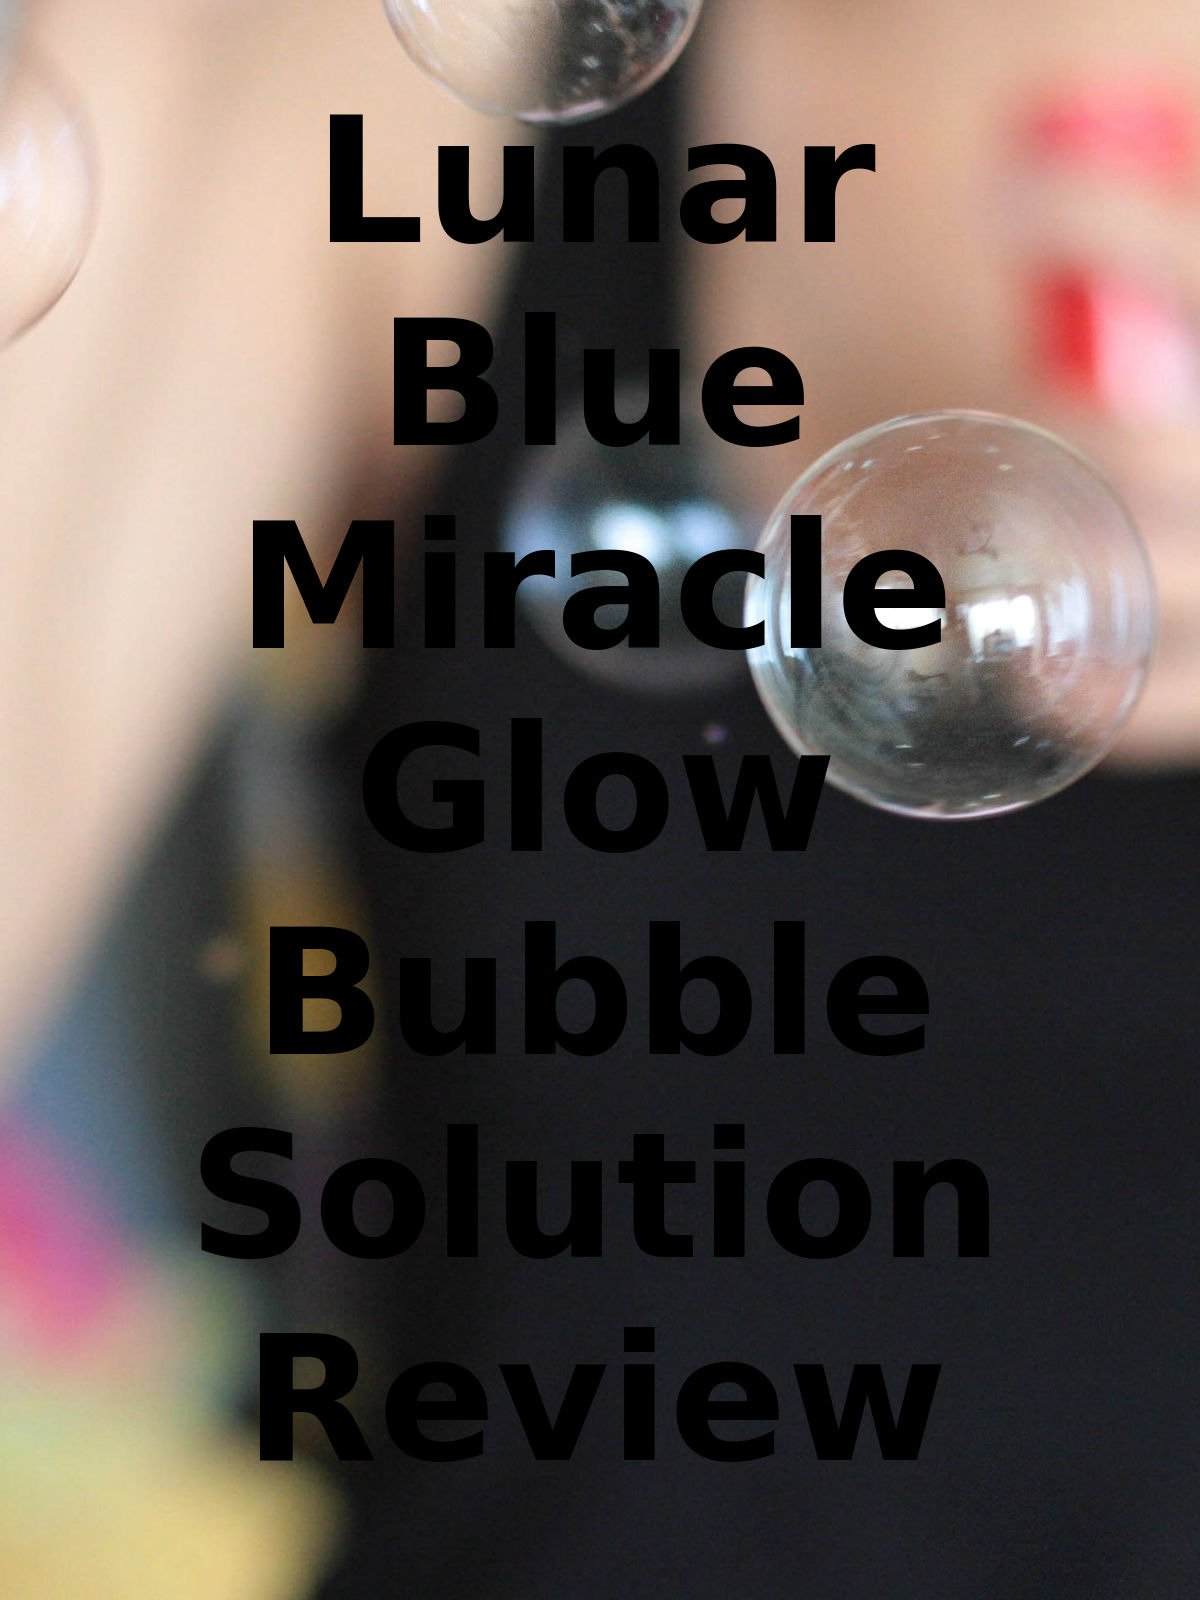 Review: Lunar Blue Miracle Glow Bubble Solution Review on Amazon Prime Video UK